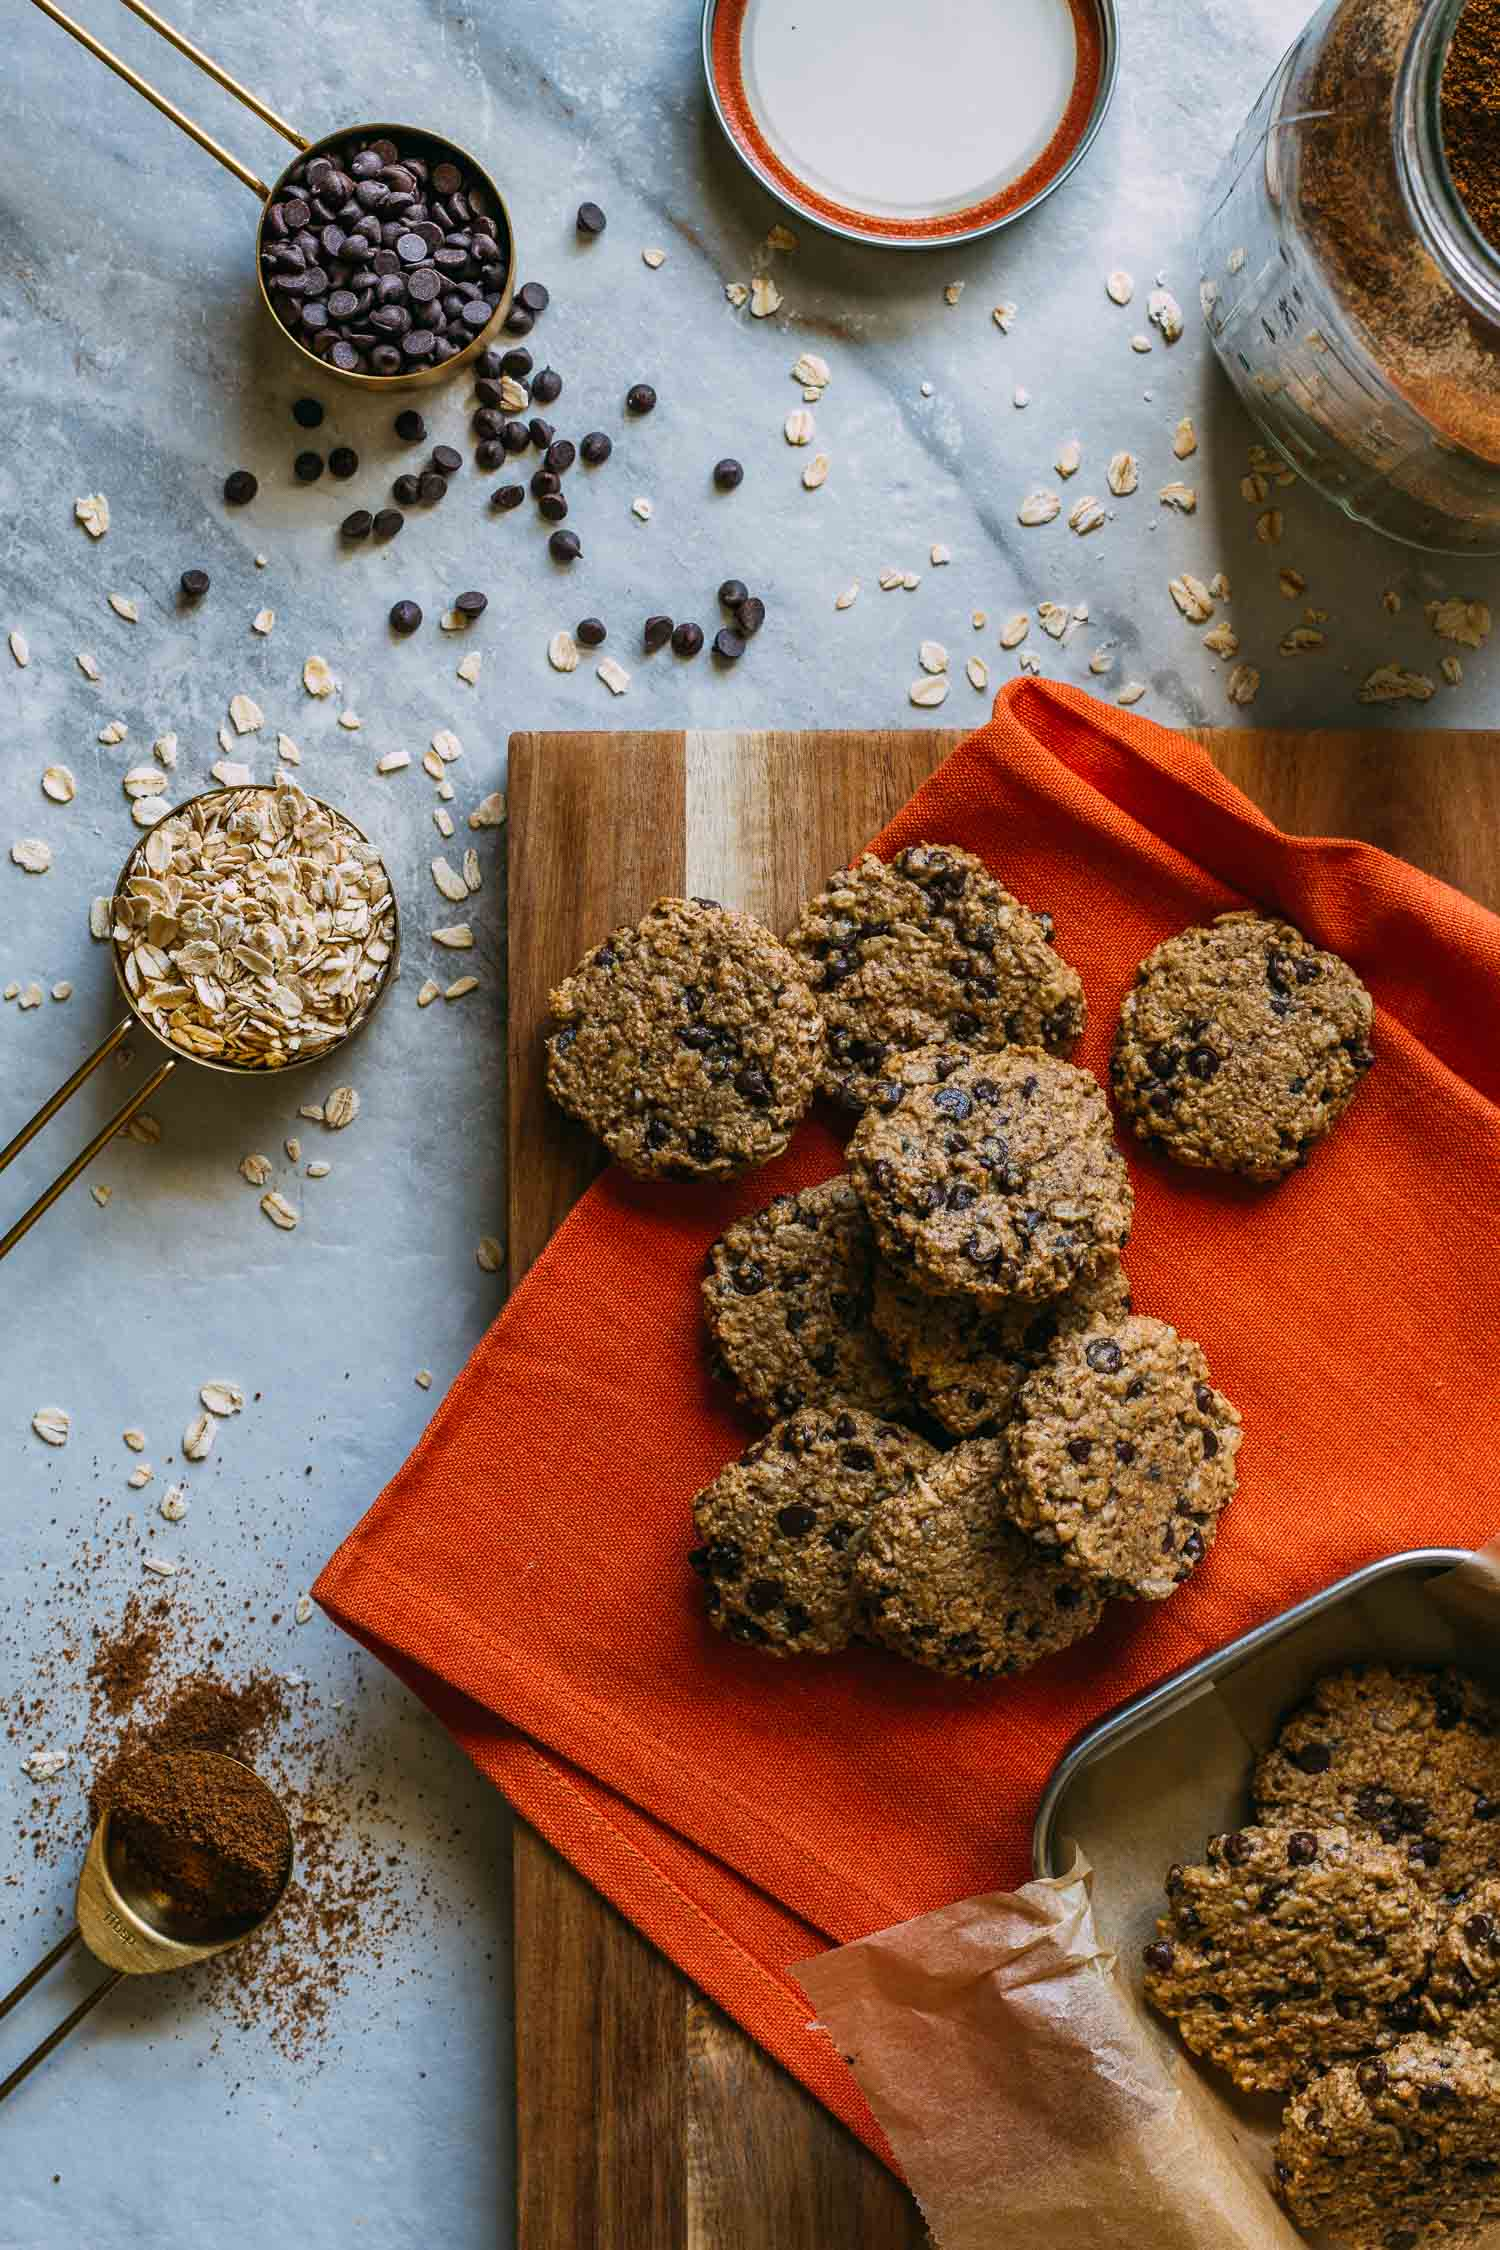 Chewy Chocolate Chip Oatmeal Cookies #tahini #oatmeal #sunflower #seeds #chocolate #chips #healthy #treat #cardamom